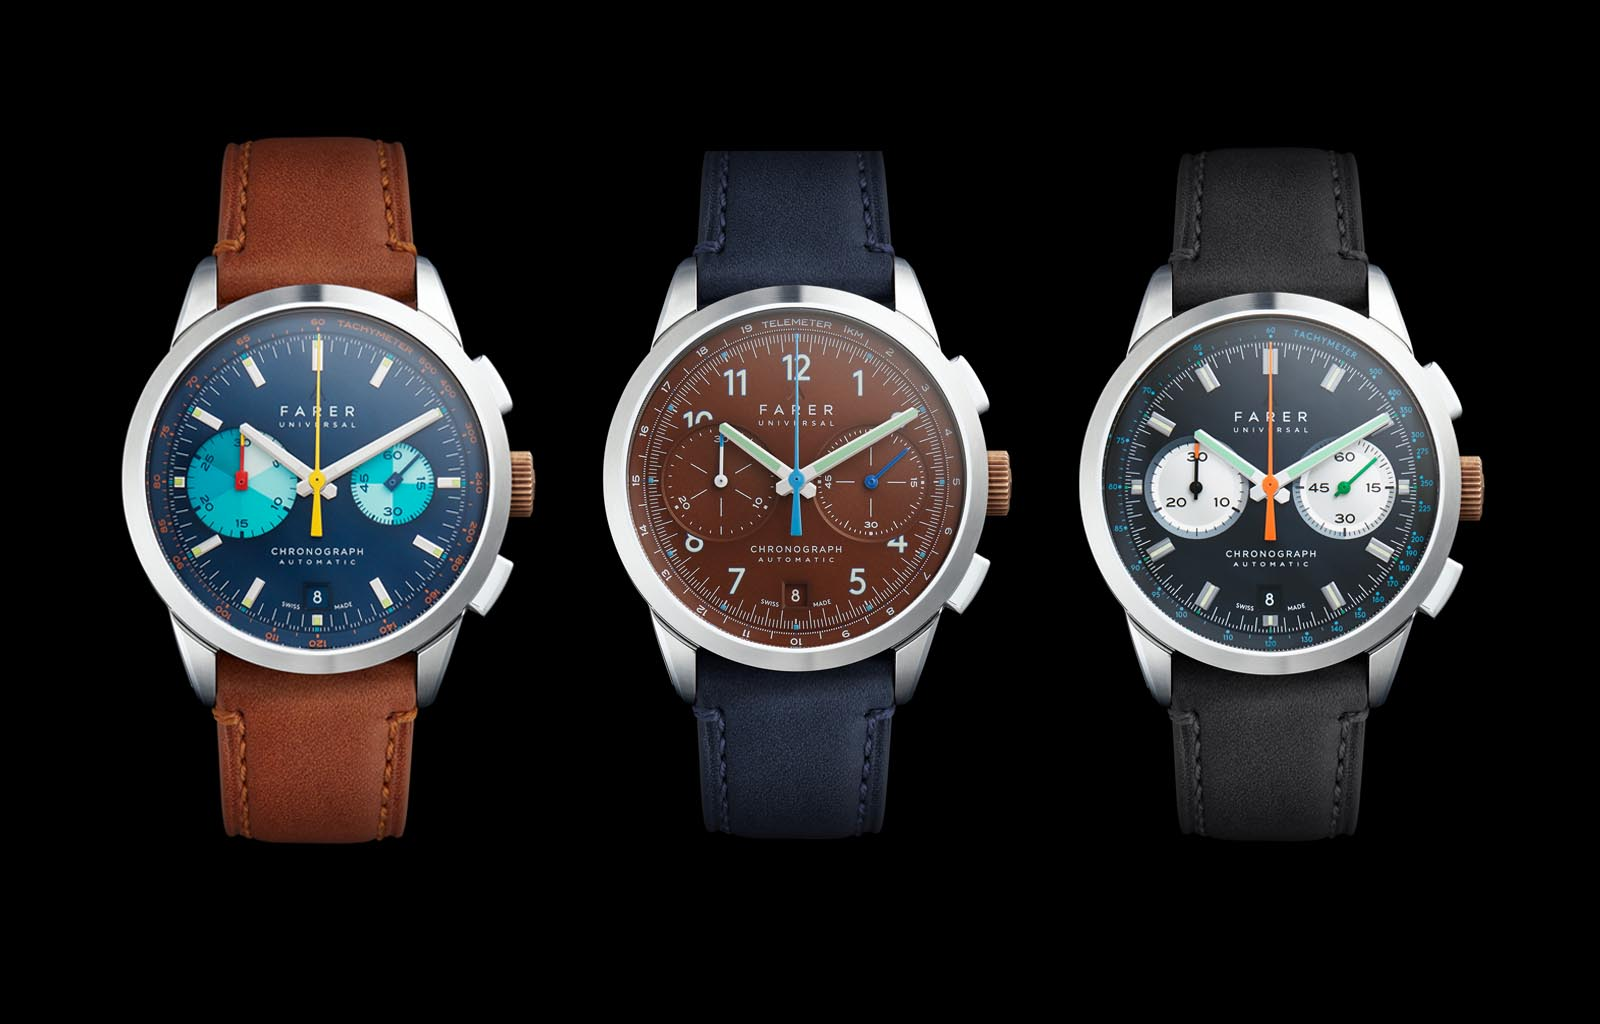 Introducing the Farer Automatic Chronograph